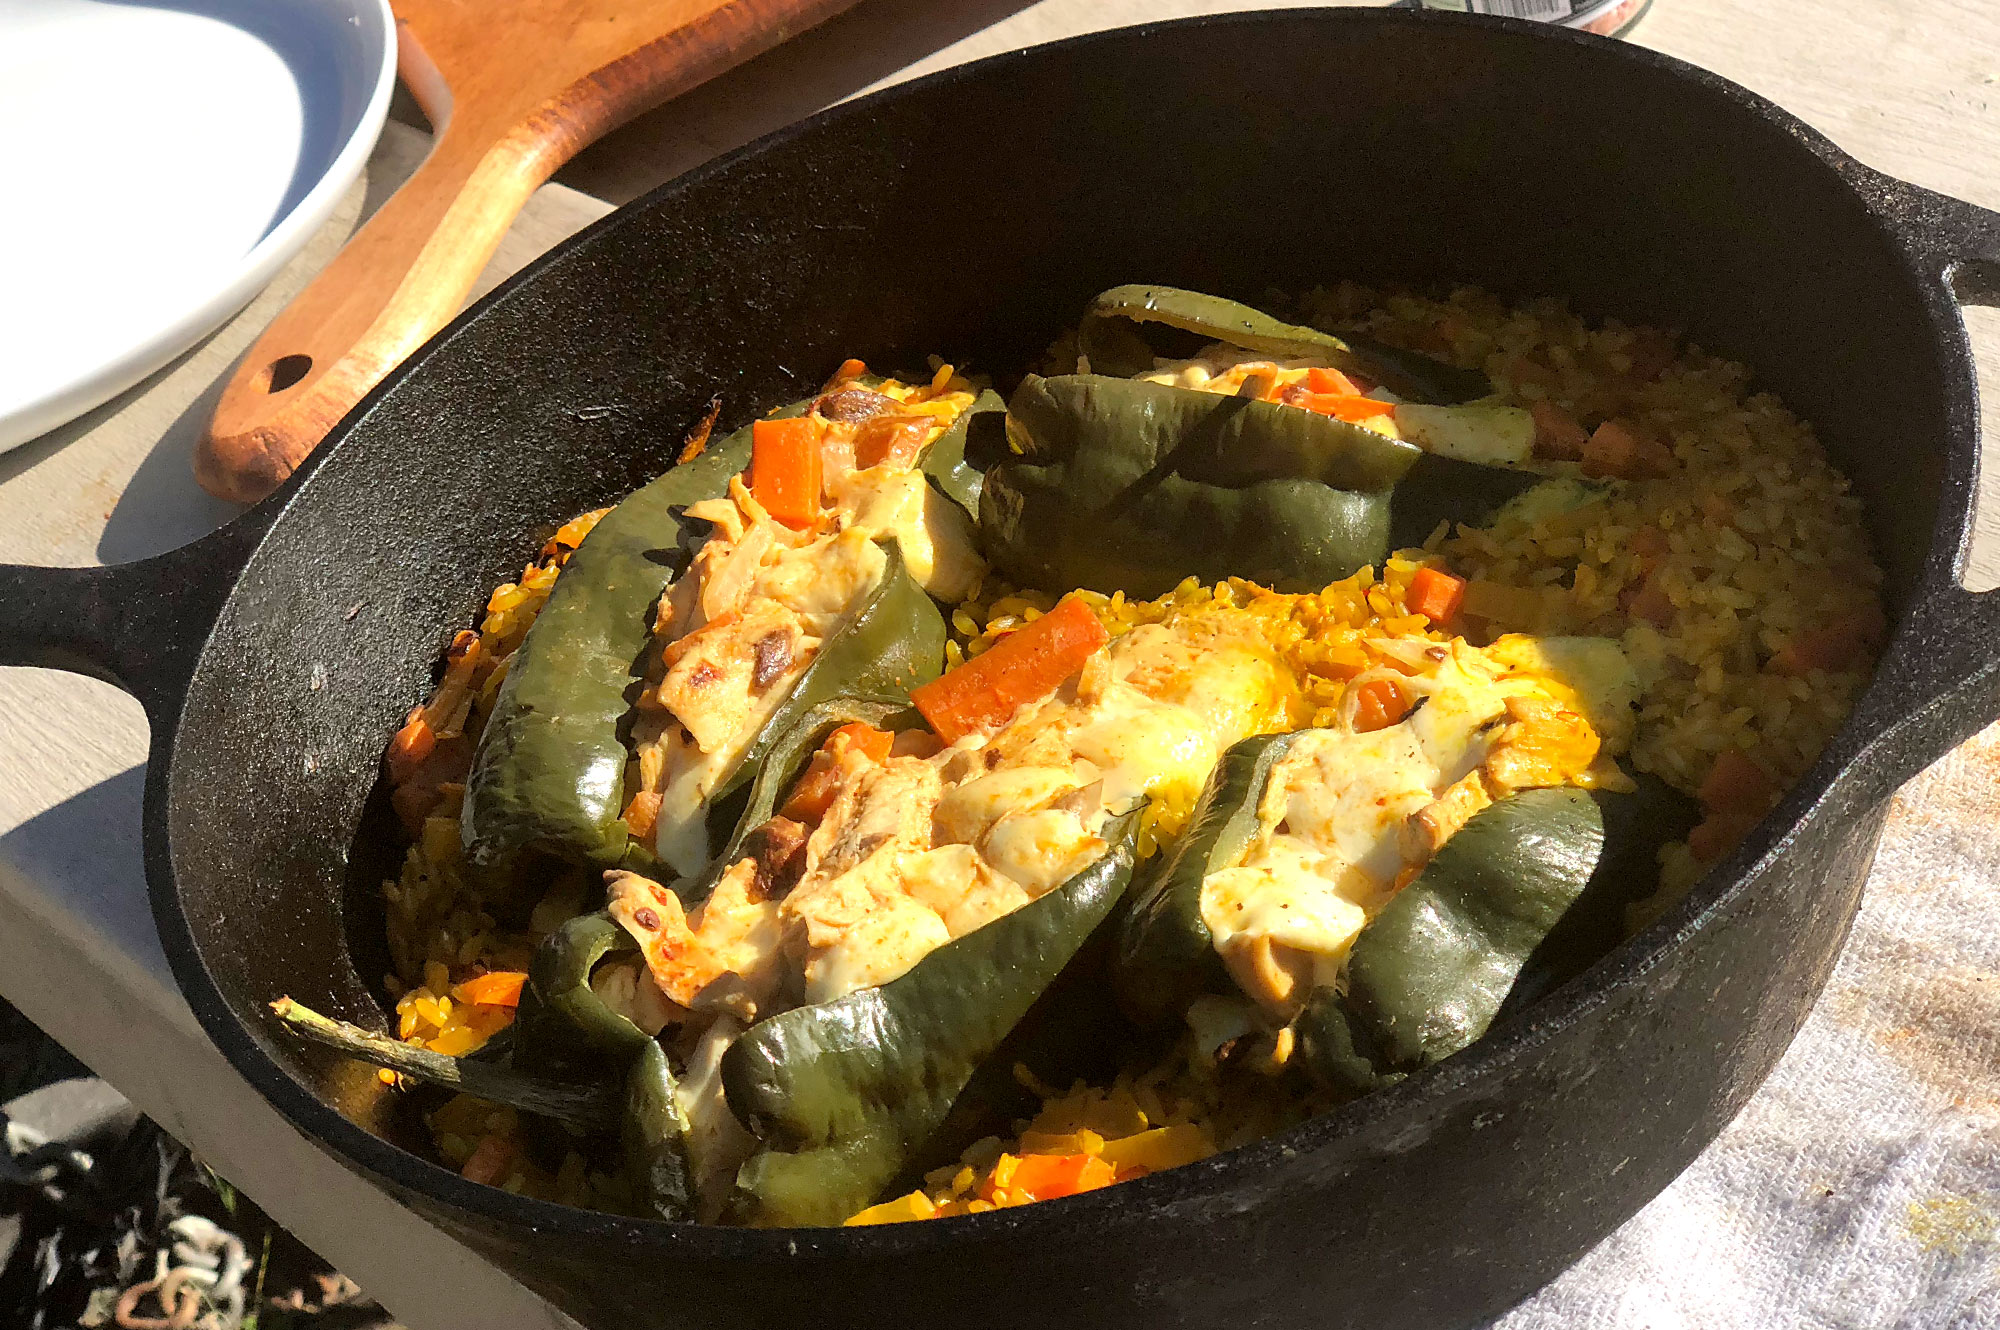 Chili chicken rellenos